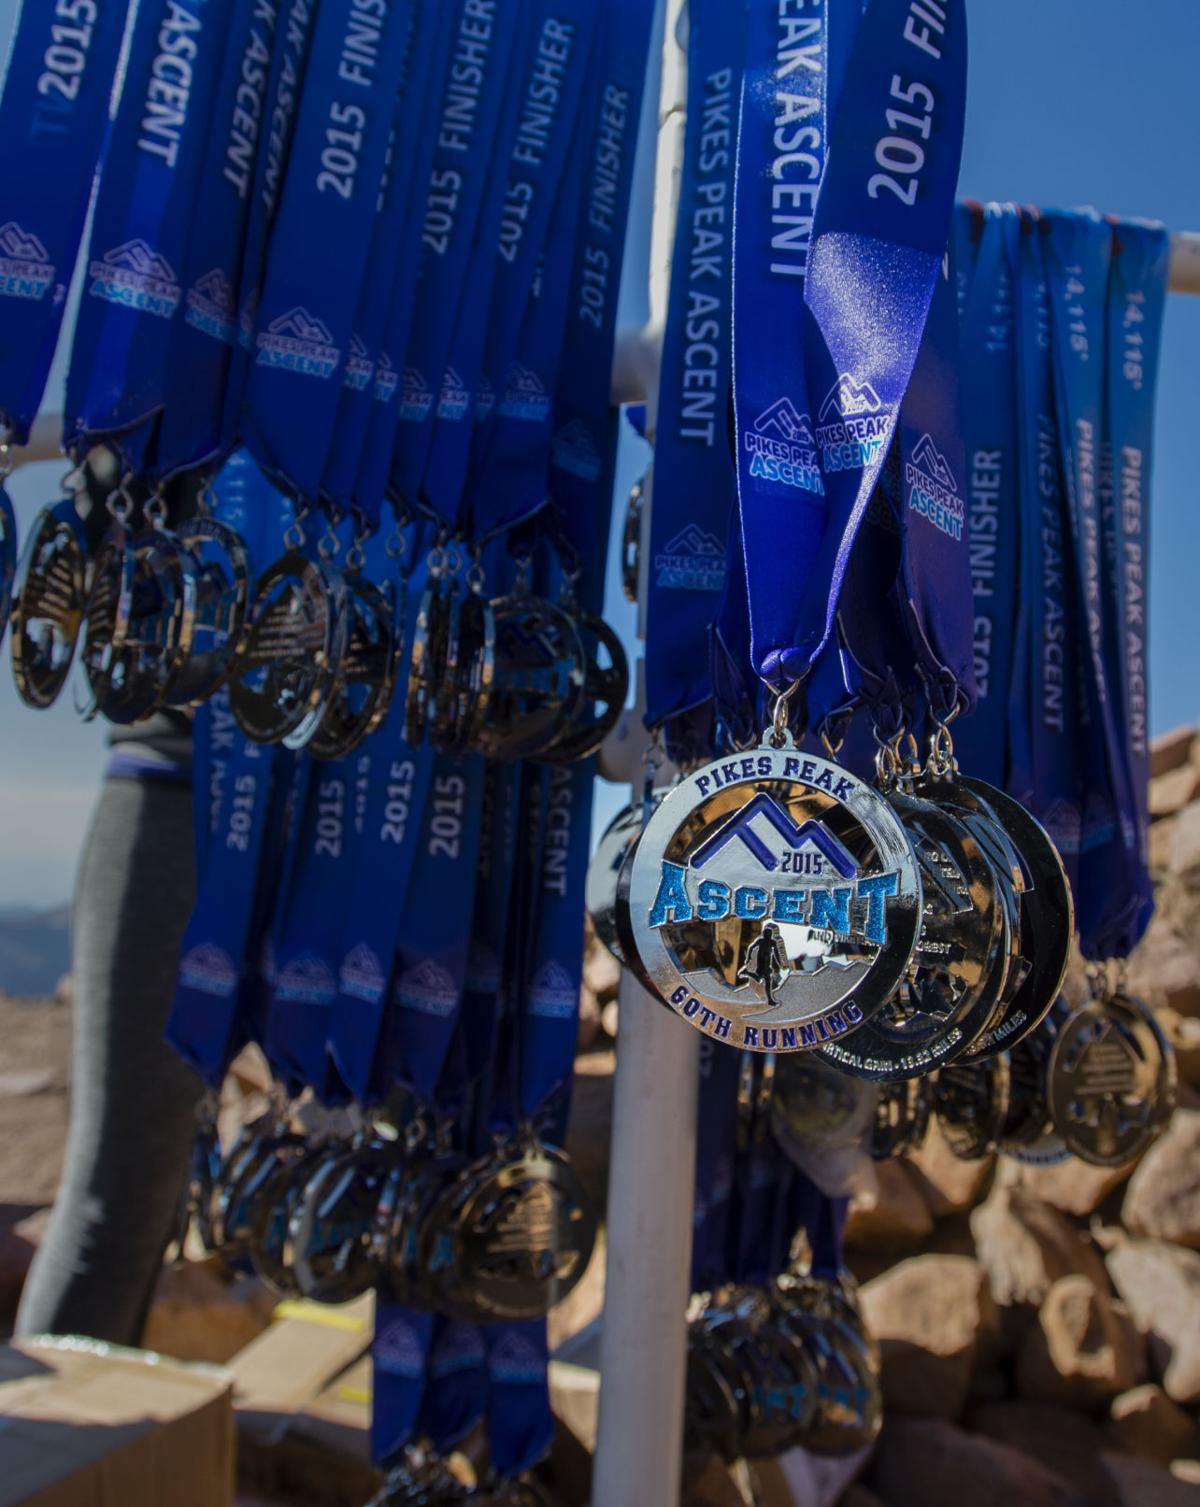 Highlights from the 2015 Pikes Peak Ascent race Saturday, Aug. 15, 2015, from Manitou Springs to the top of 14,115-foot Pikes Peak. (The Gazette, Christian Murdock)